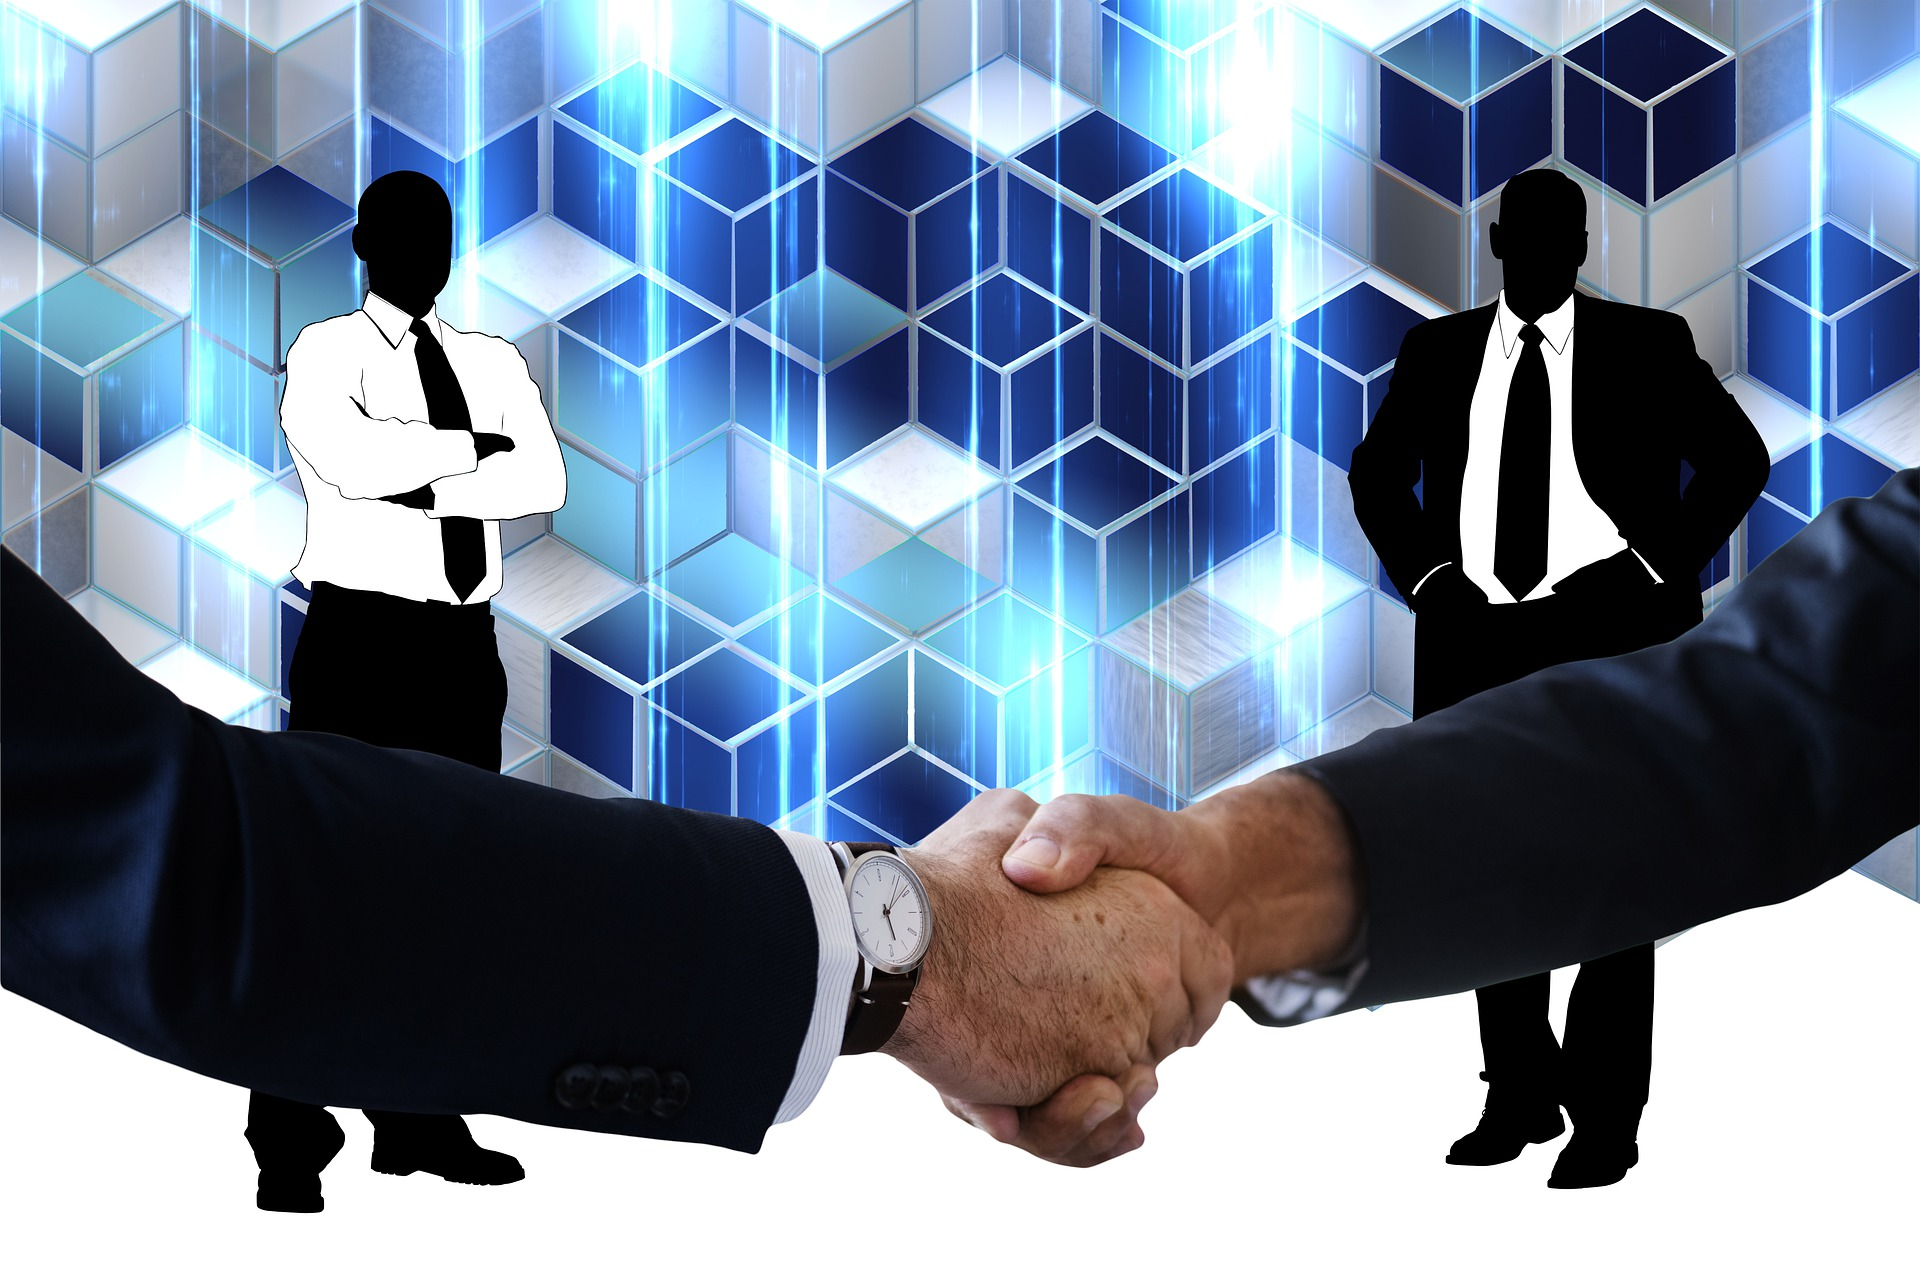 Businesspeople agreeing with handshake